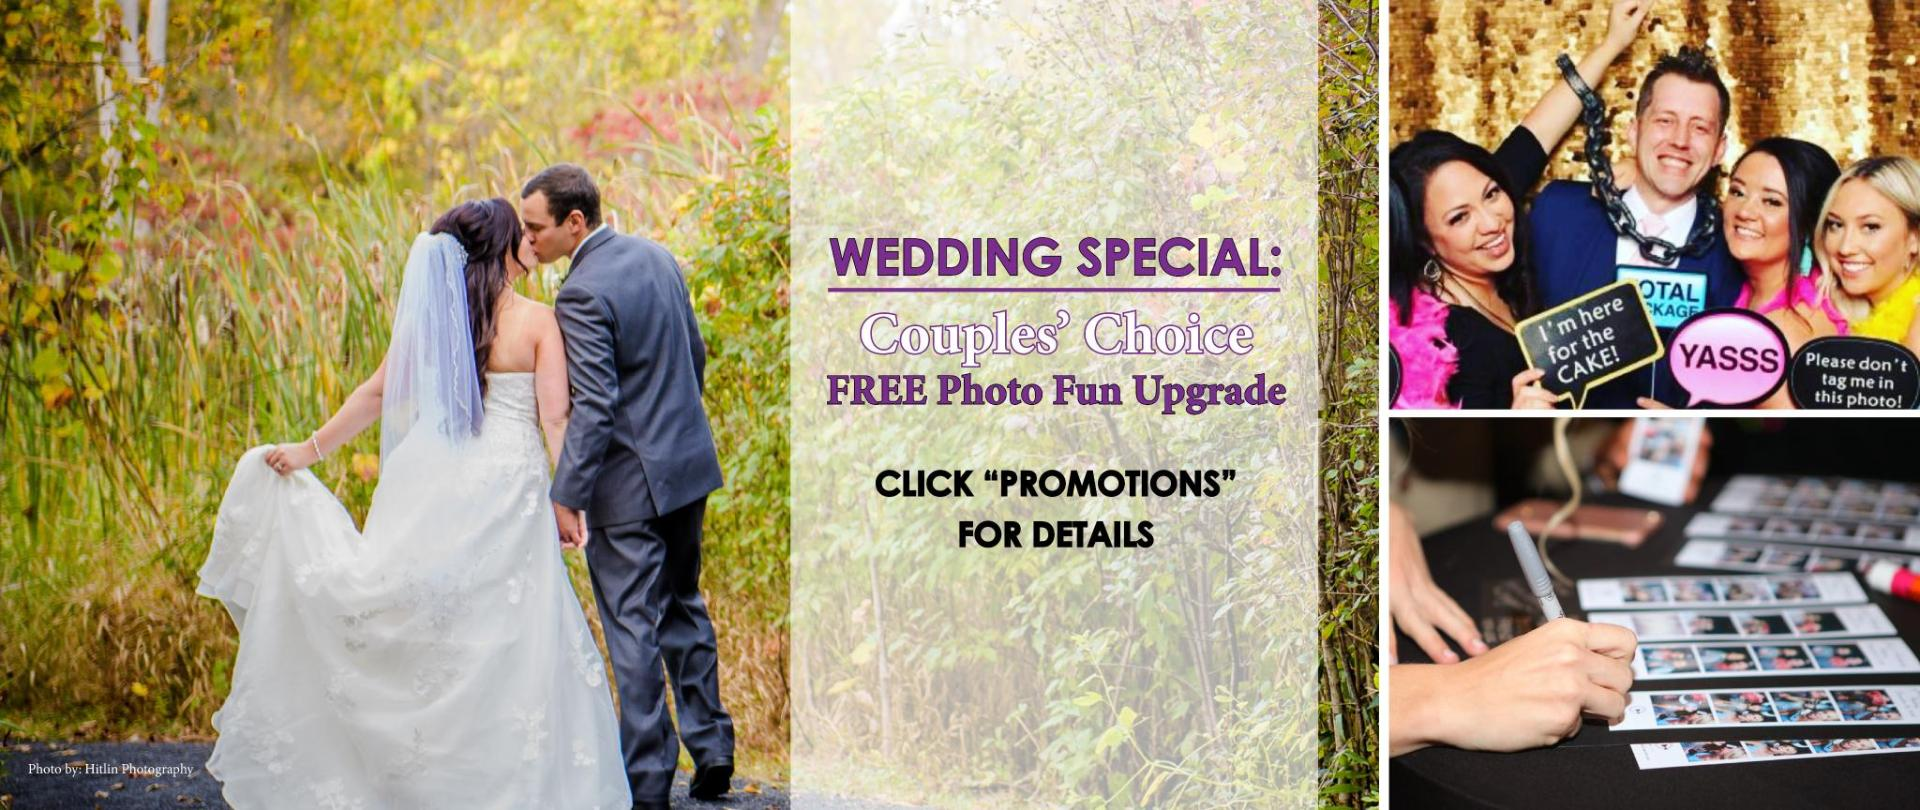 Couples Choice Photo Upgrade Promo Web Homepage Image.jpg